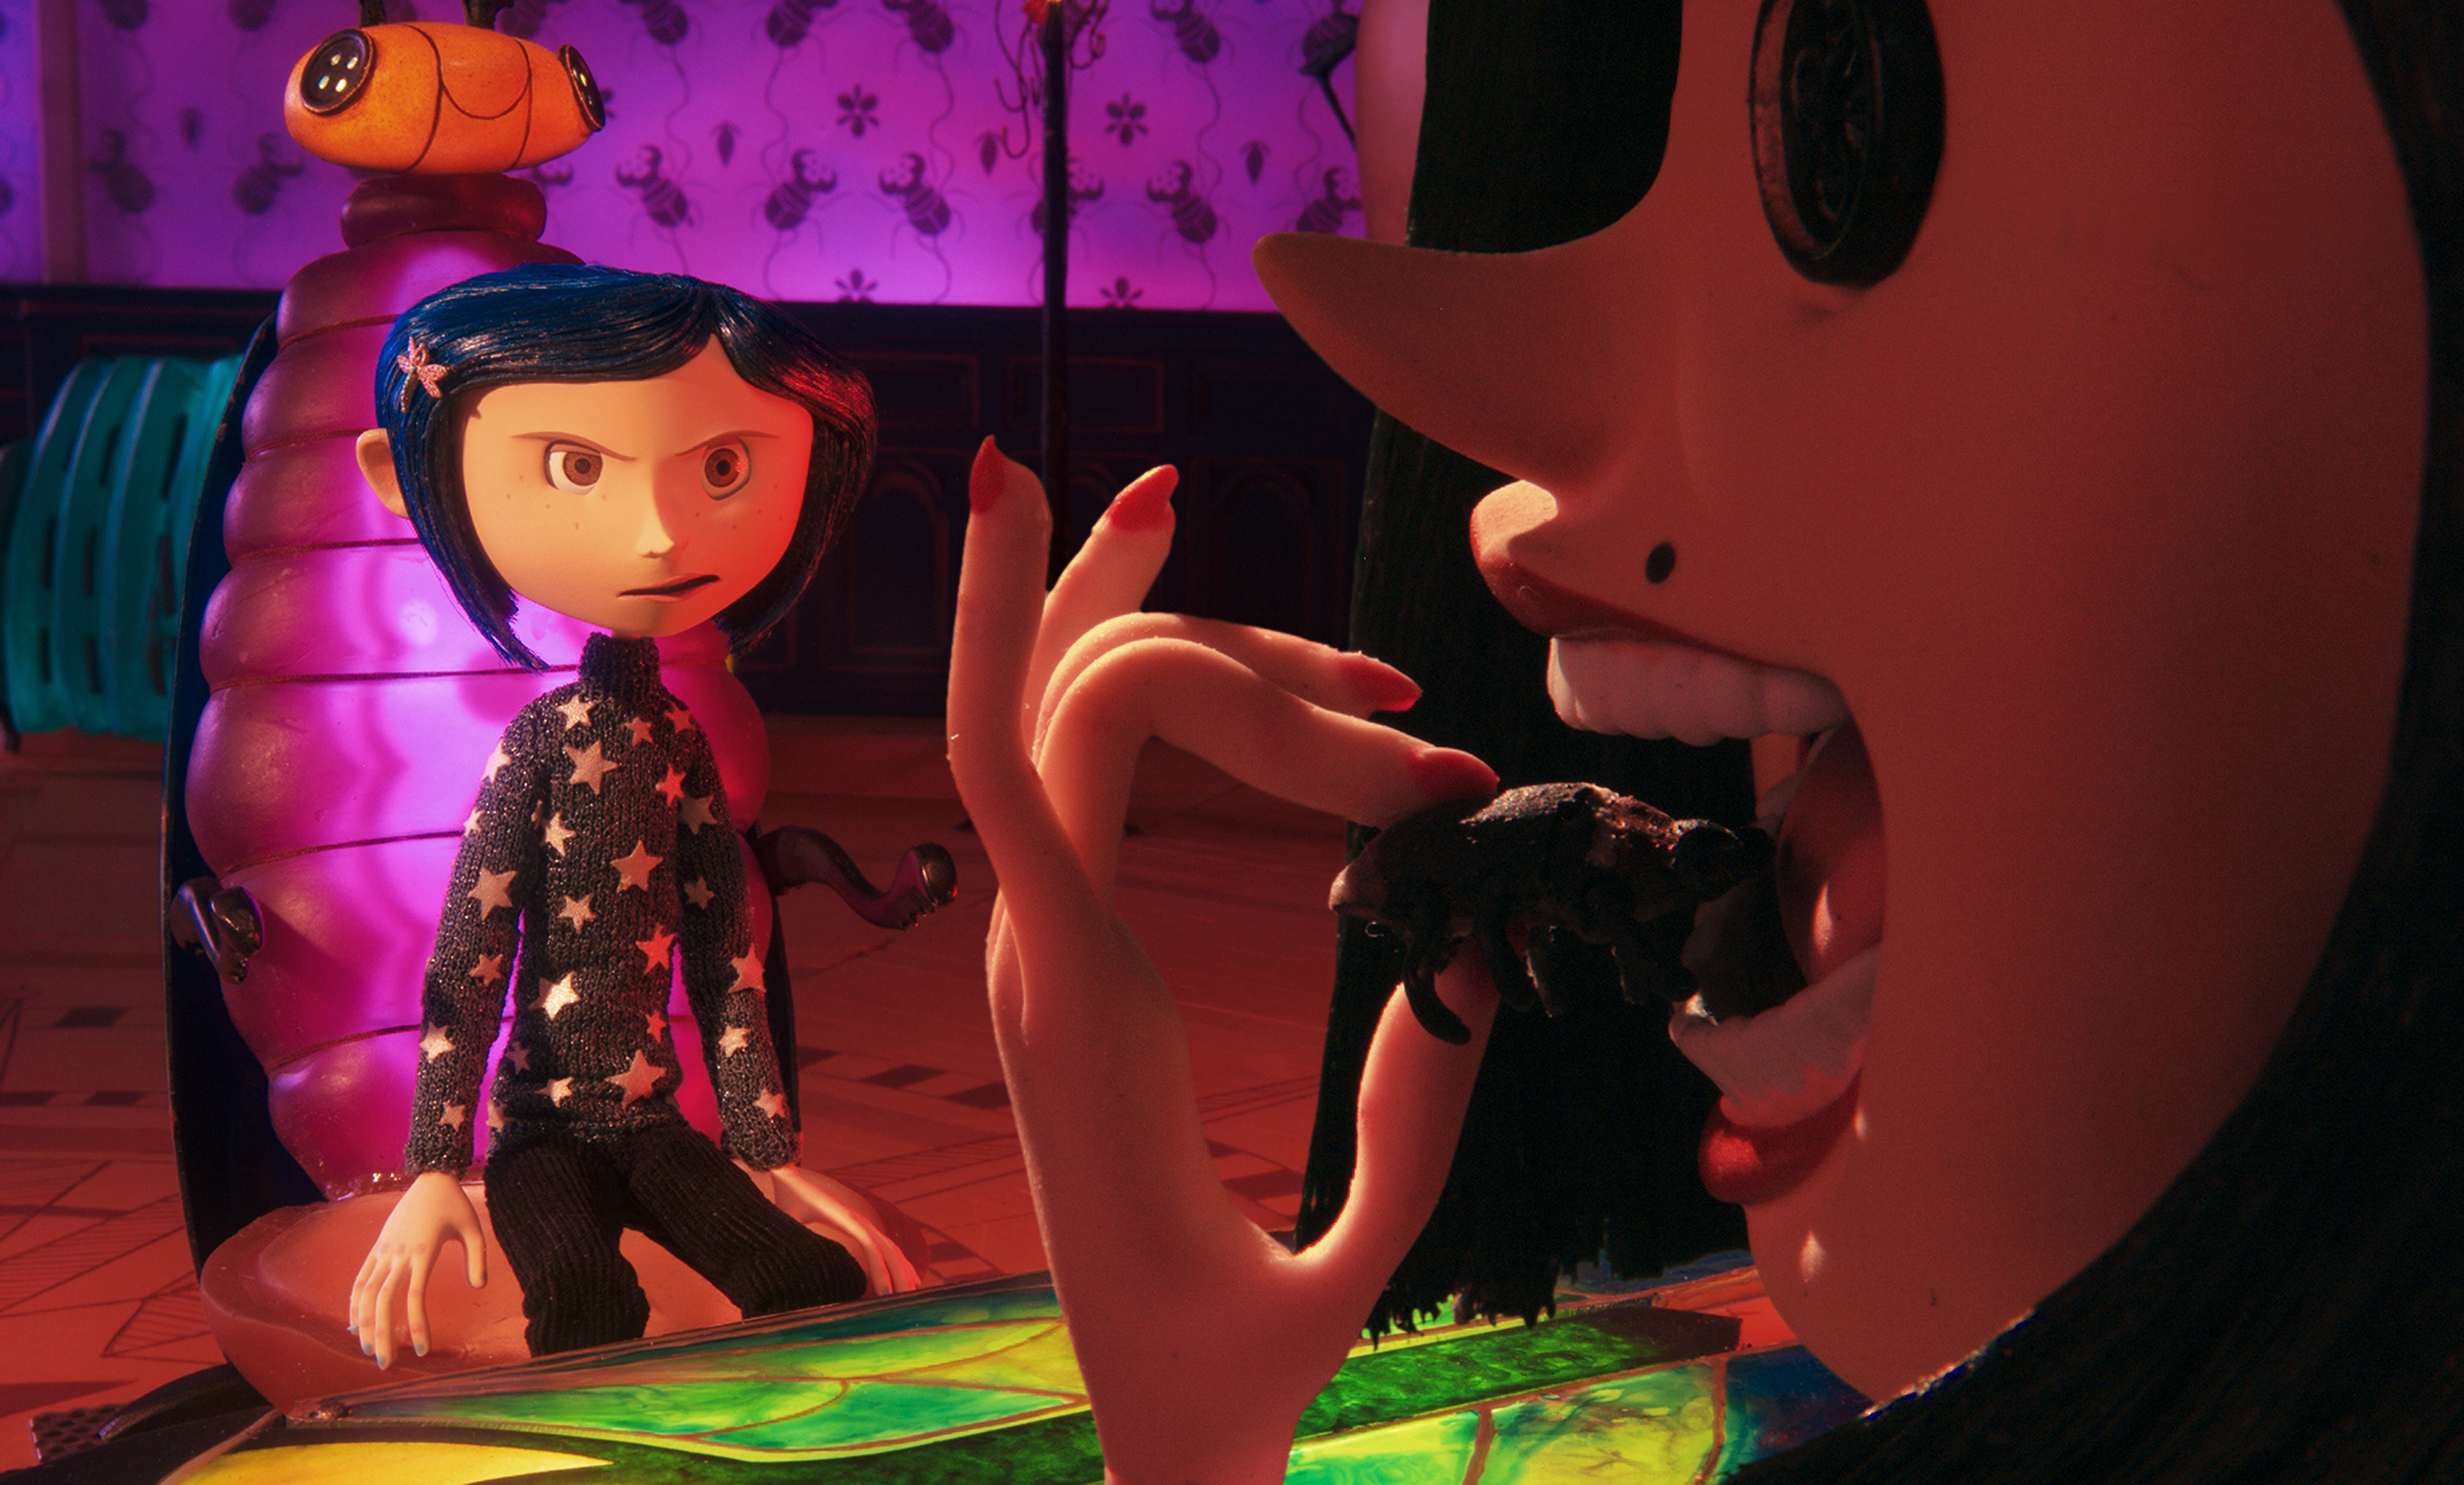 Still from 'Coraline'